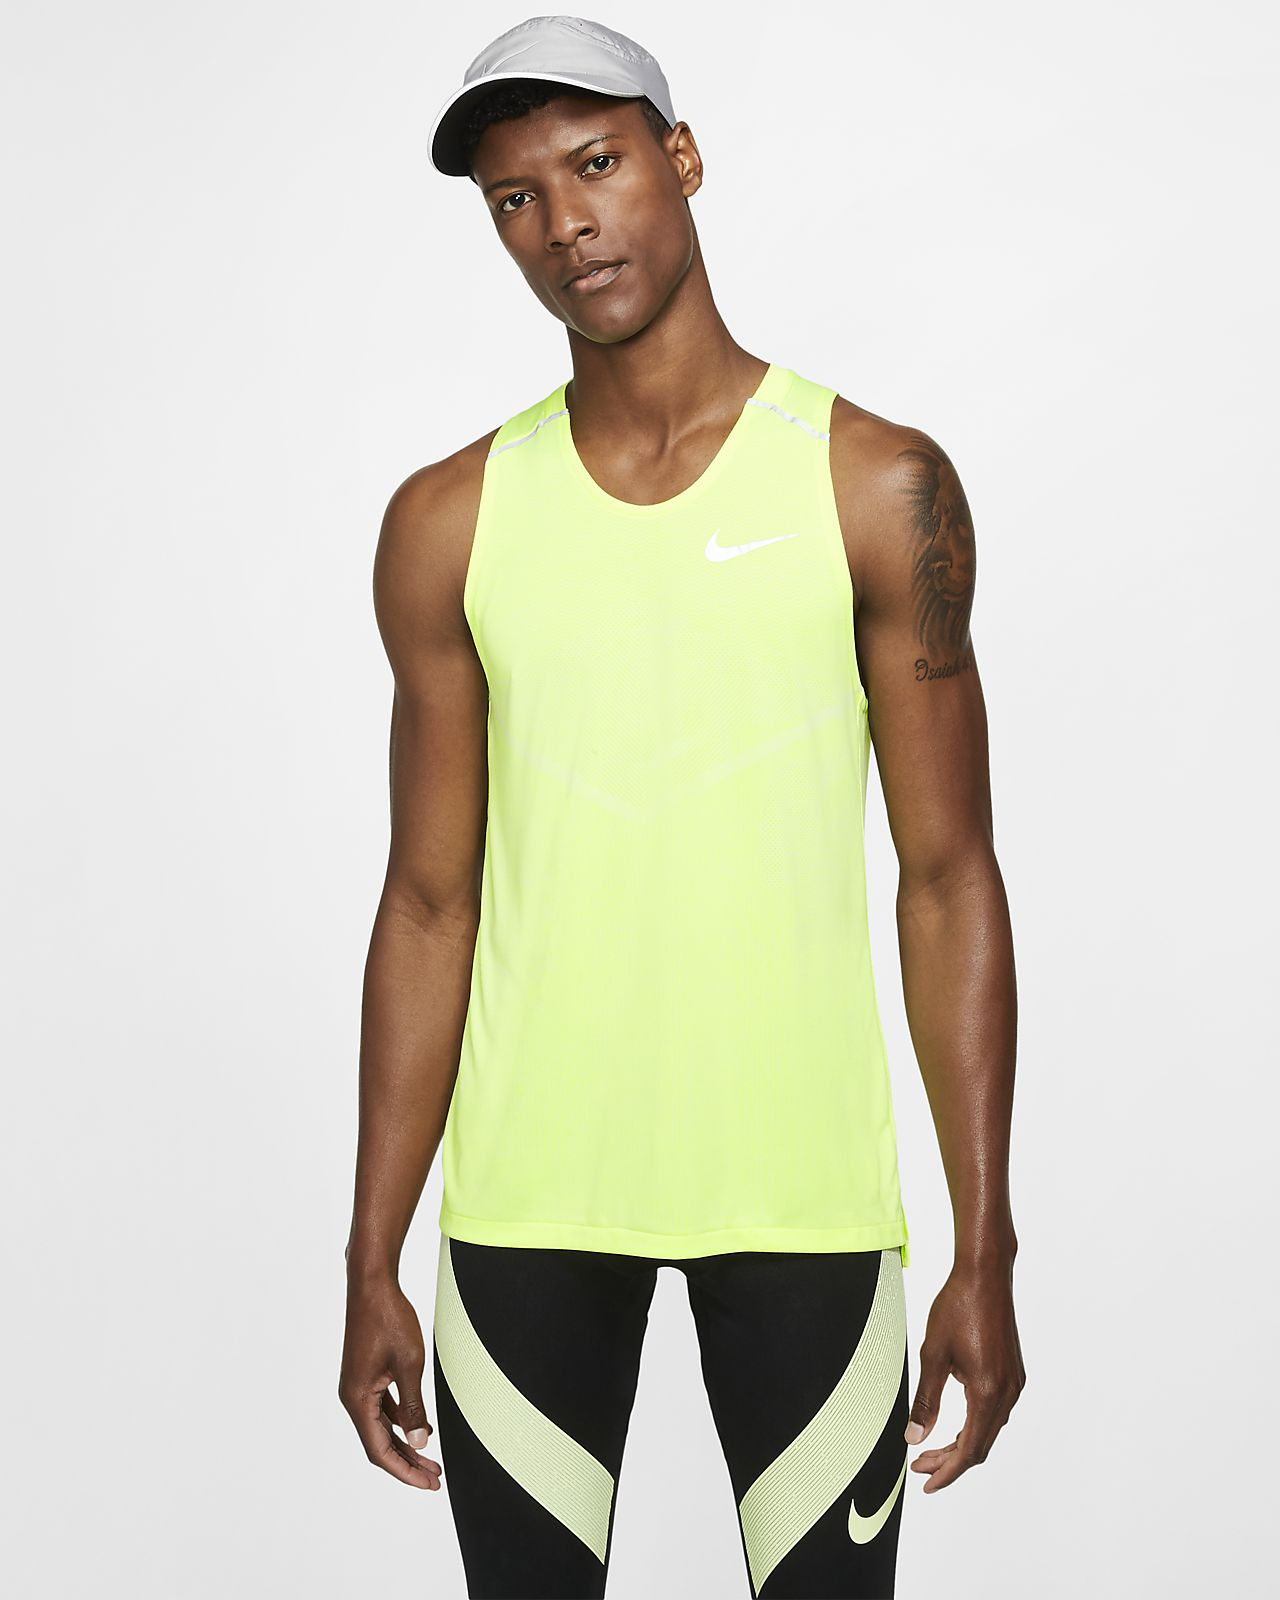 Nike TechKnit Cool Men's Running Tank